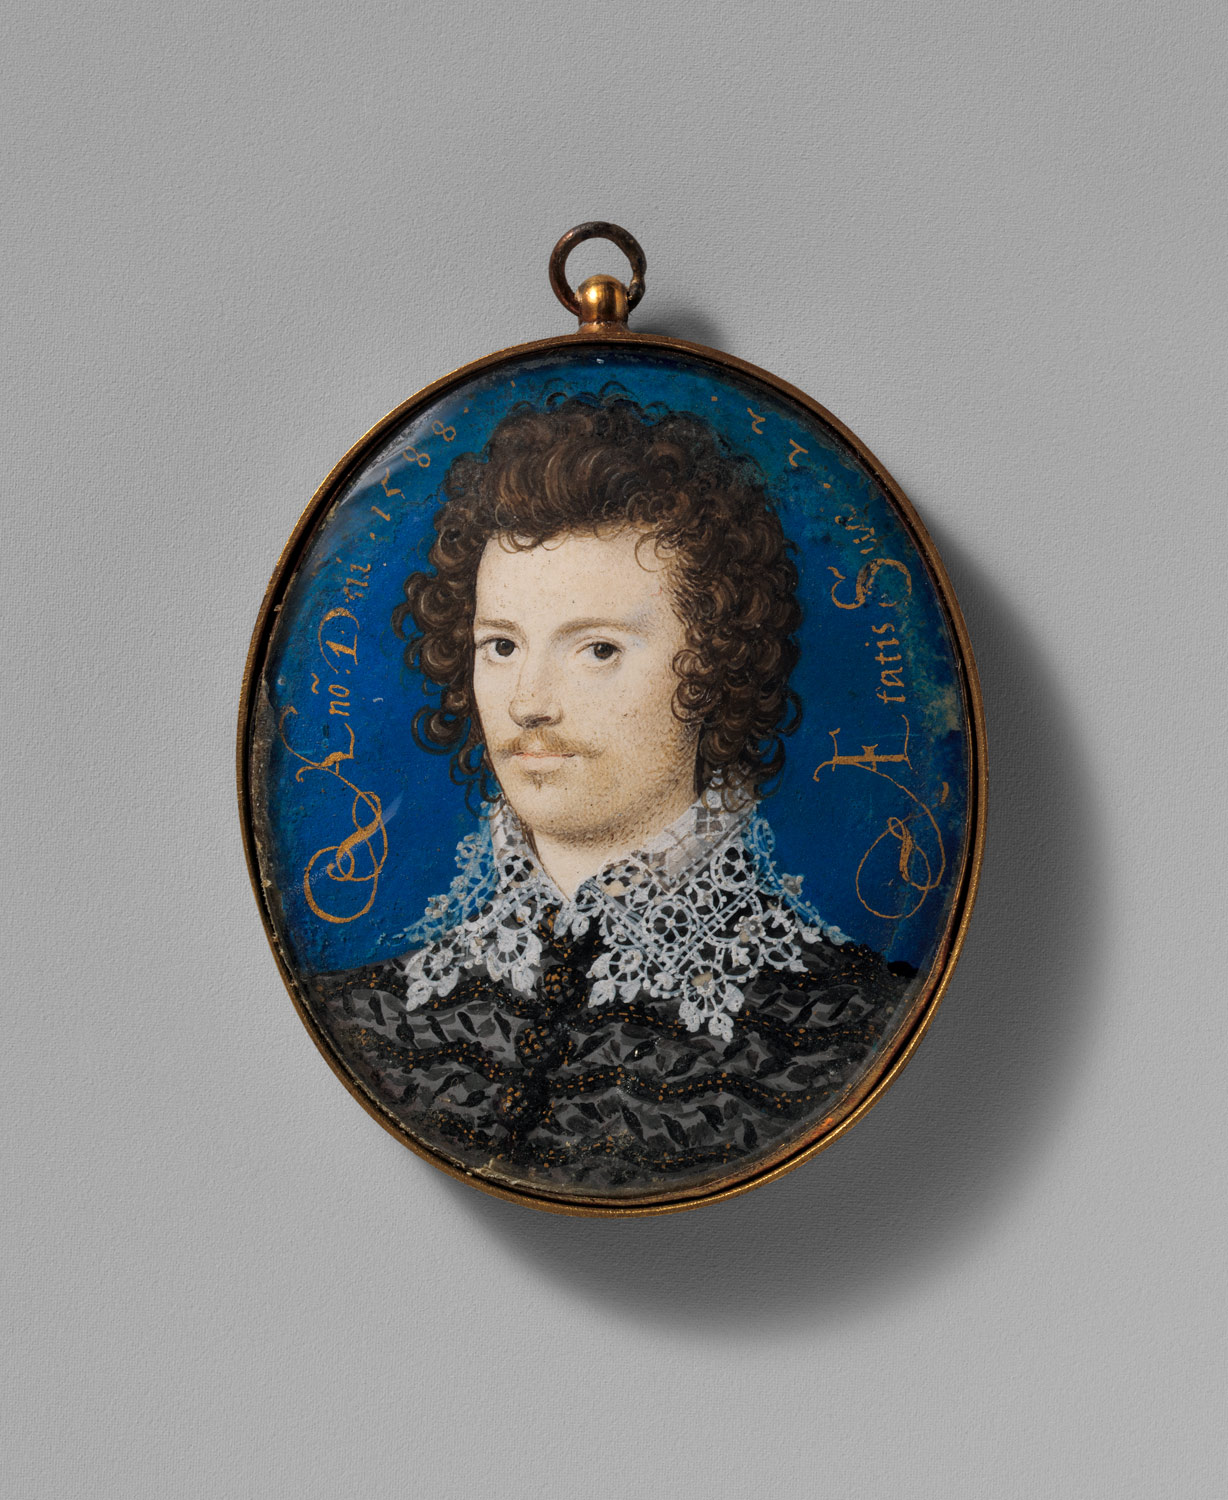 Portrait of a Young Man, Probably Robert Devereux (1566-1601), Second Earl of Essex